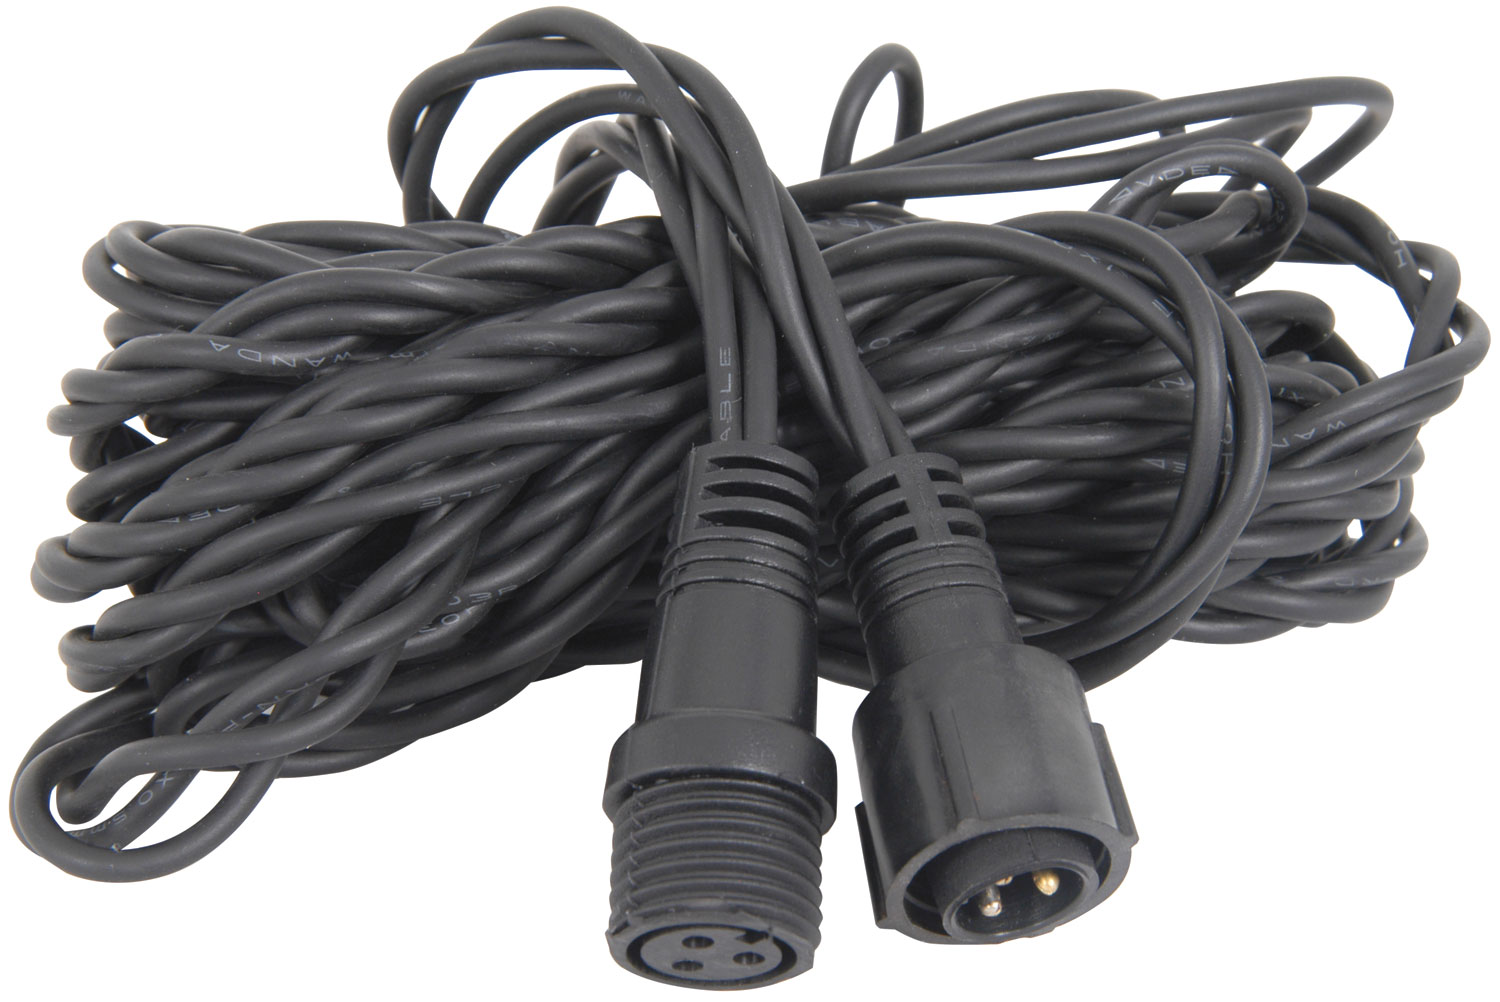 Avsl Product Home Lighting Heavy Duty Outdoor Strings With Wiring Garden Lights Uk Controller 155490uk